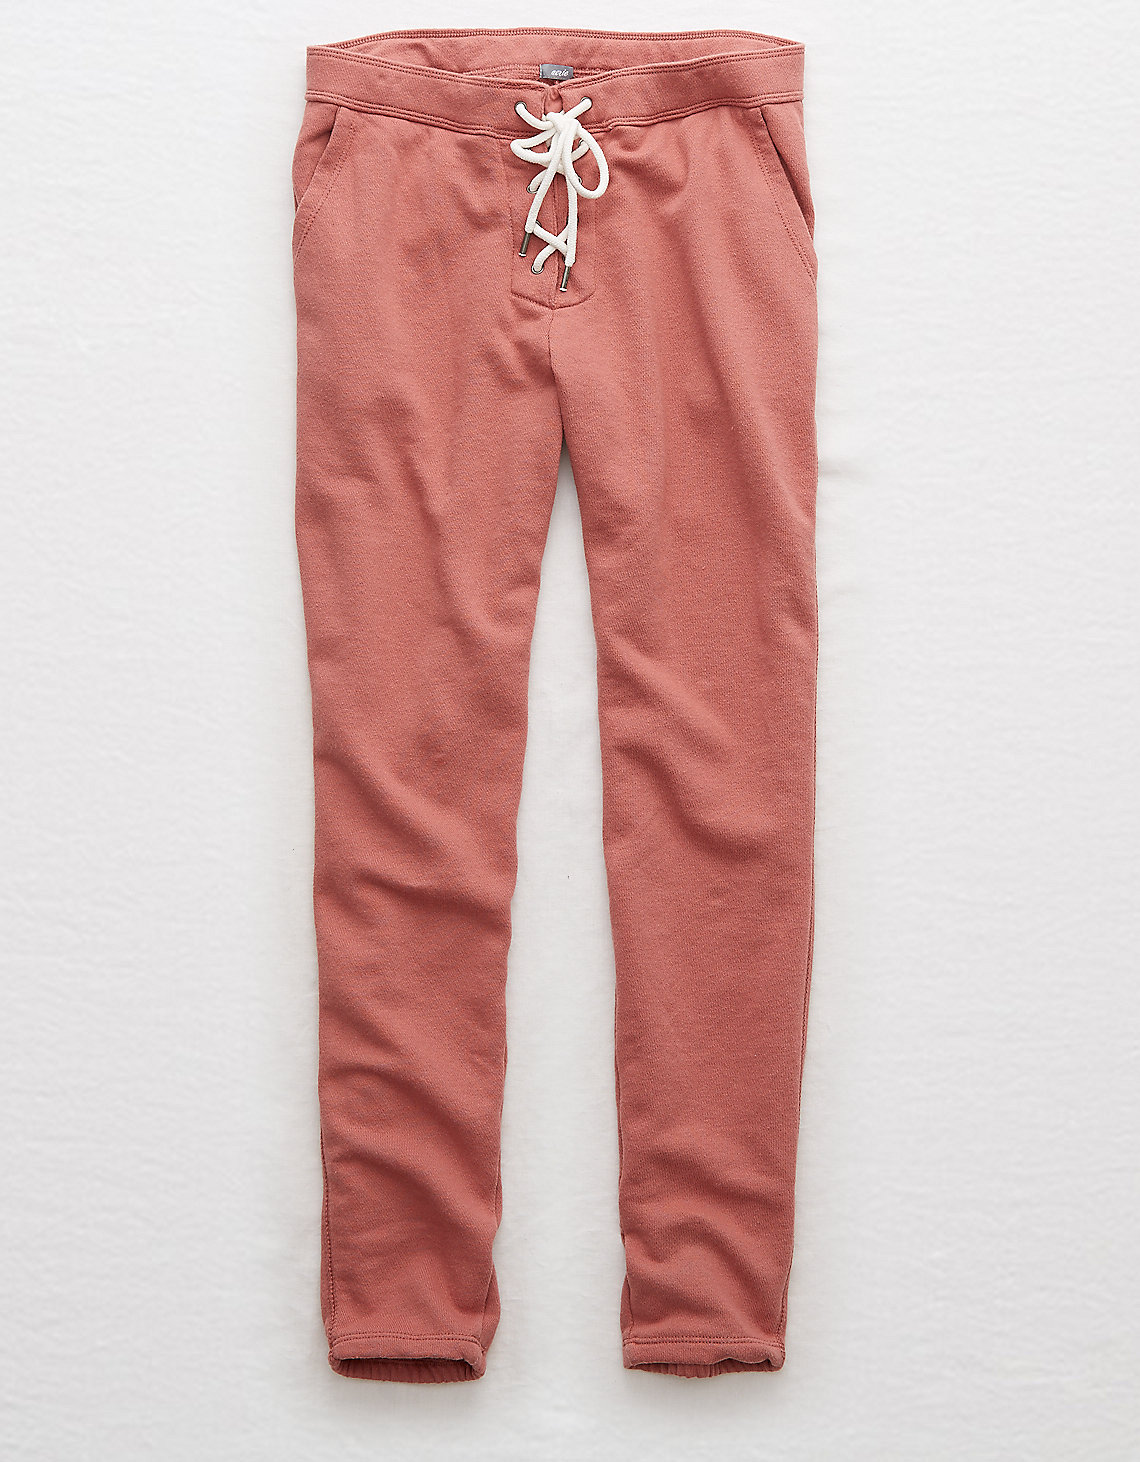 tanger outlets american eagle fleece pants